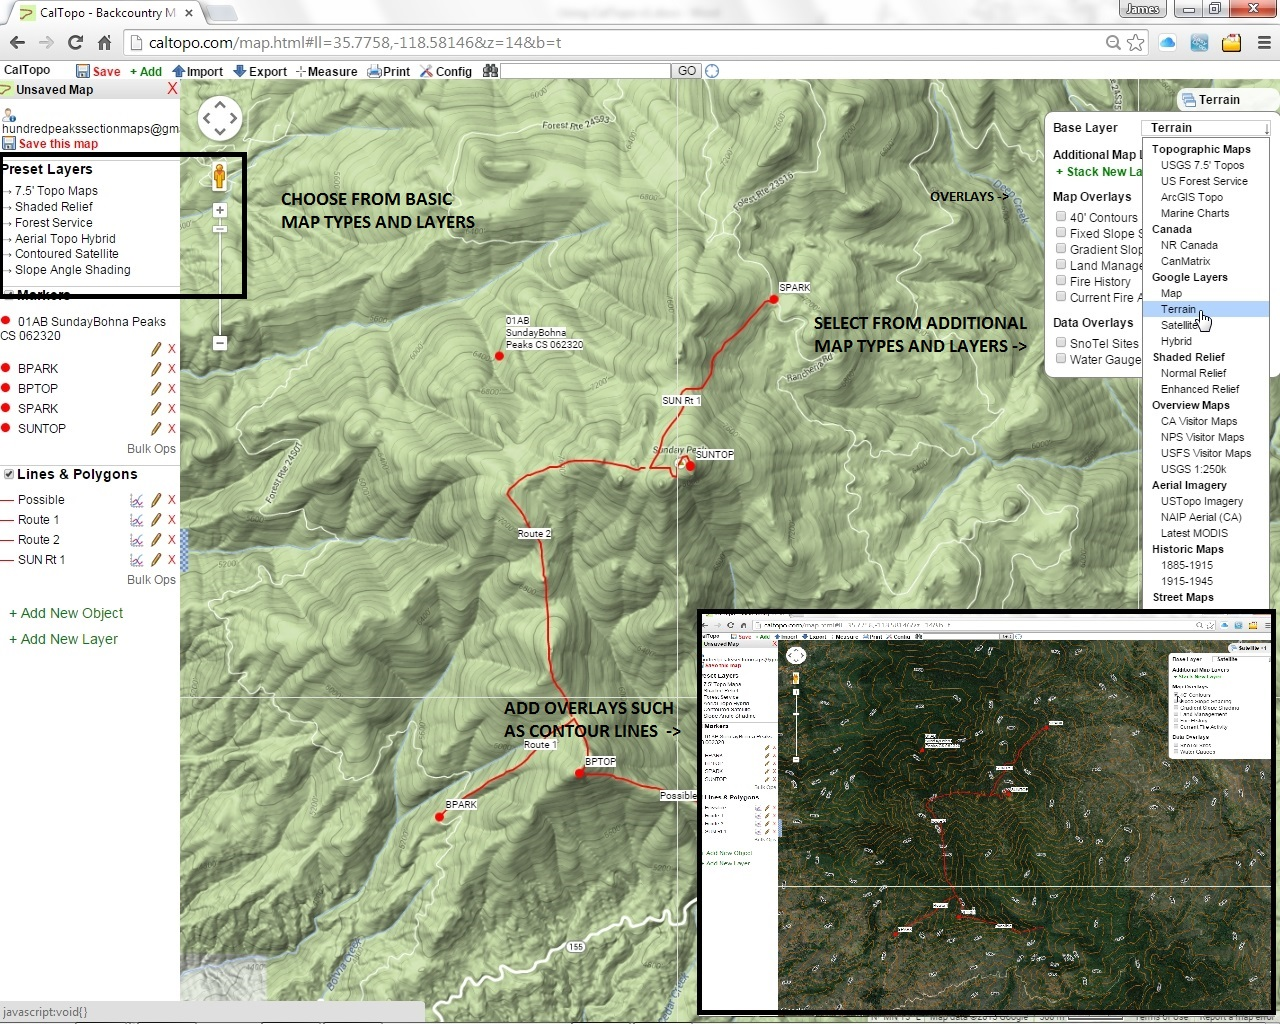 USING CALTOPO WITH HPS MAPS - Us forest service topographic maps